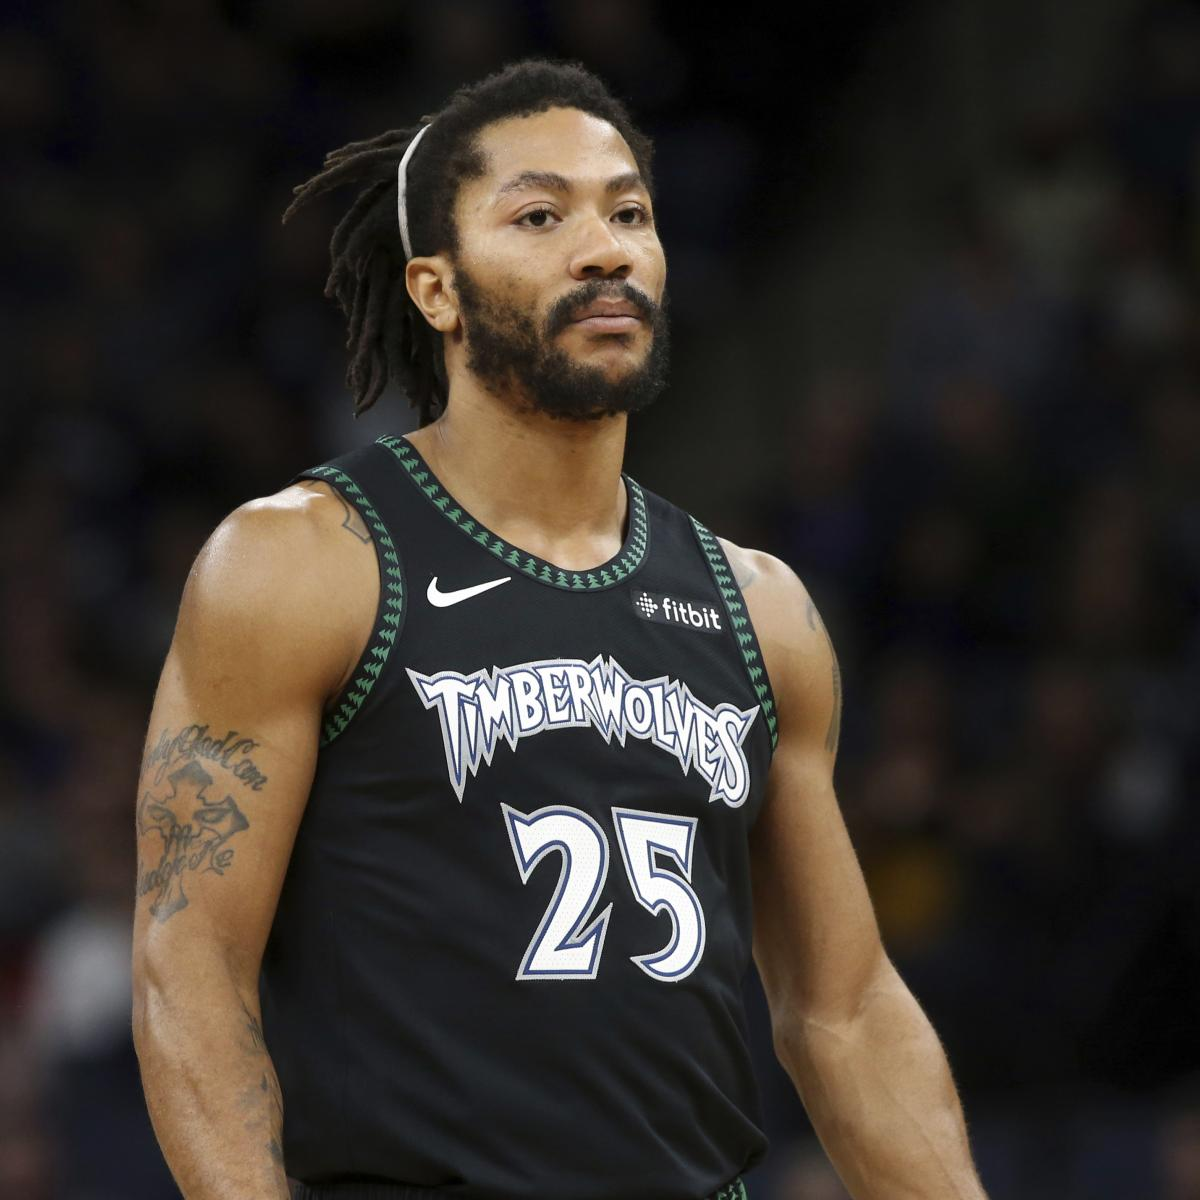 bc9b9e3d5 Video: Derrick Rose Shares Trailer for 'Pooh: The Derrick Rose Story' |  Bleacher Report | Latest News, Videos and Highlights